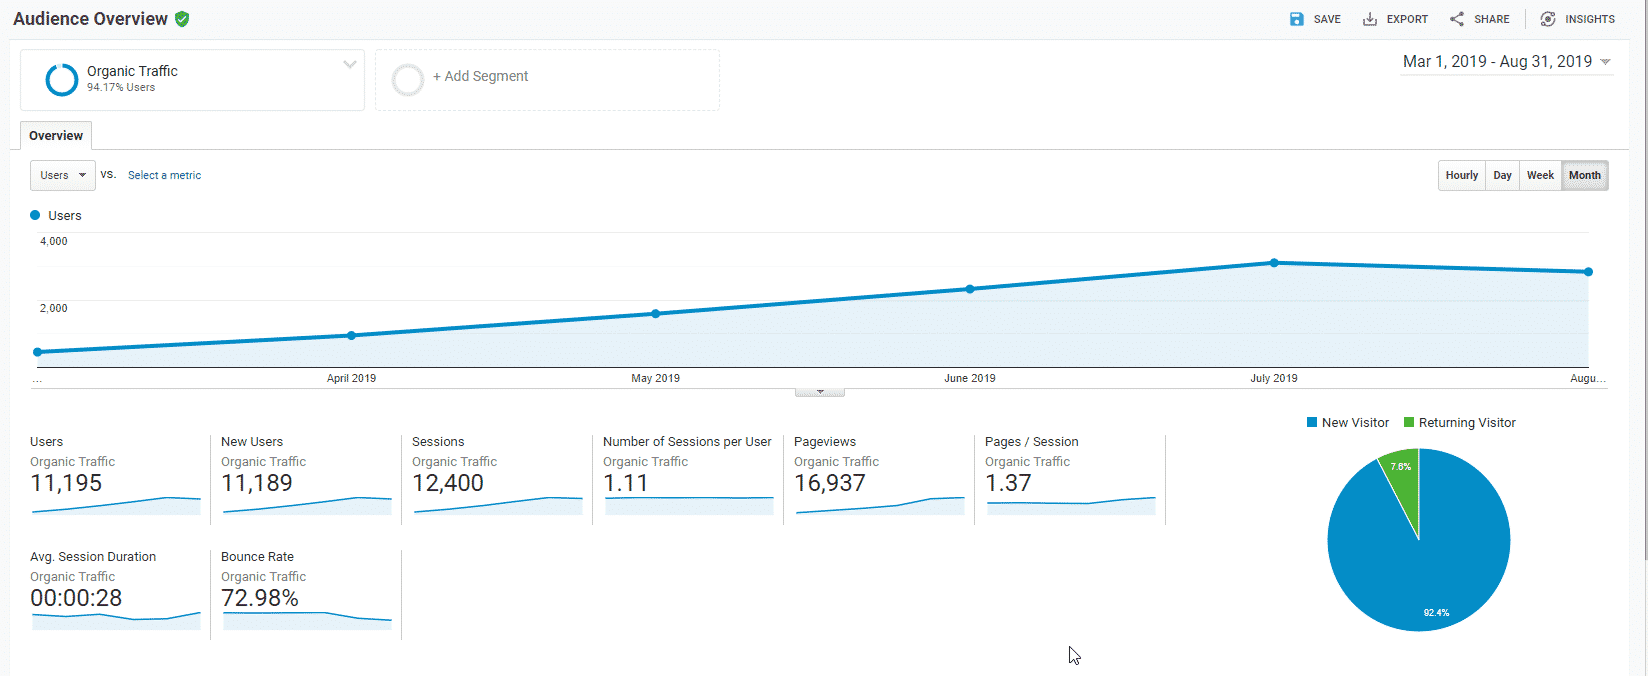 11195 new website visitors in under 6 months